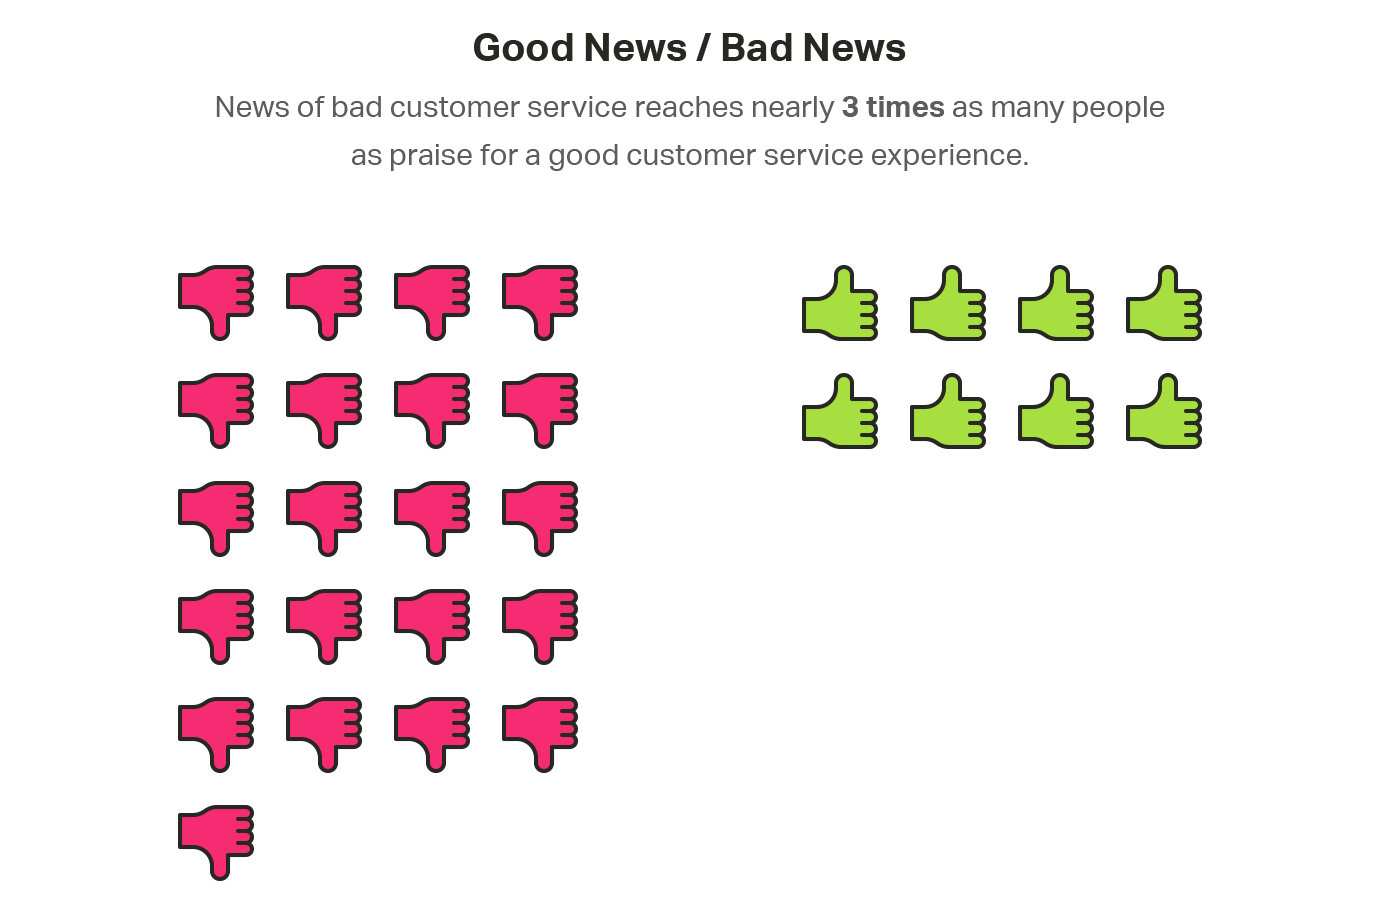 Bad news vs. good news in customer service